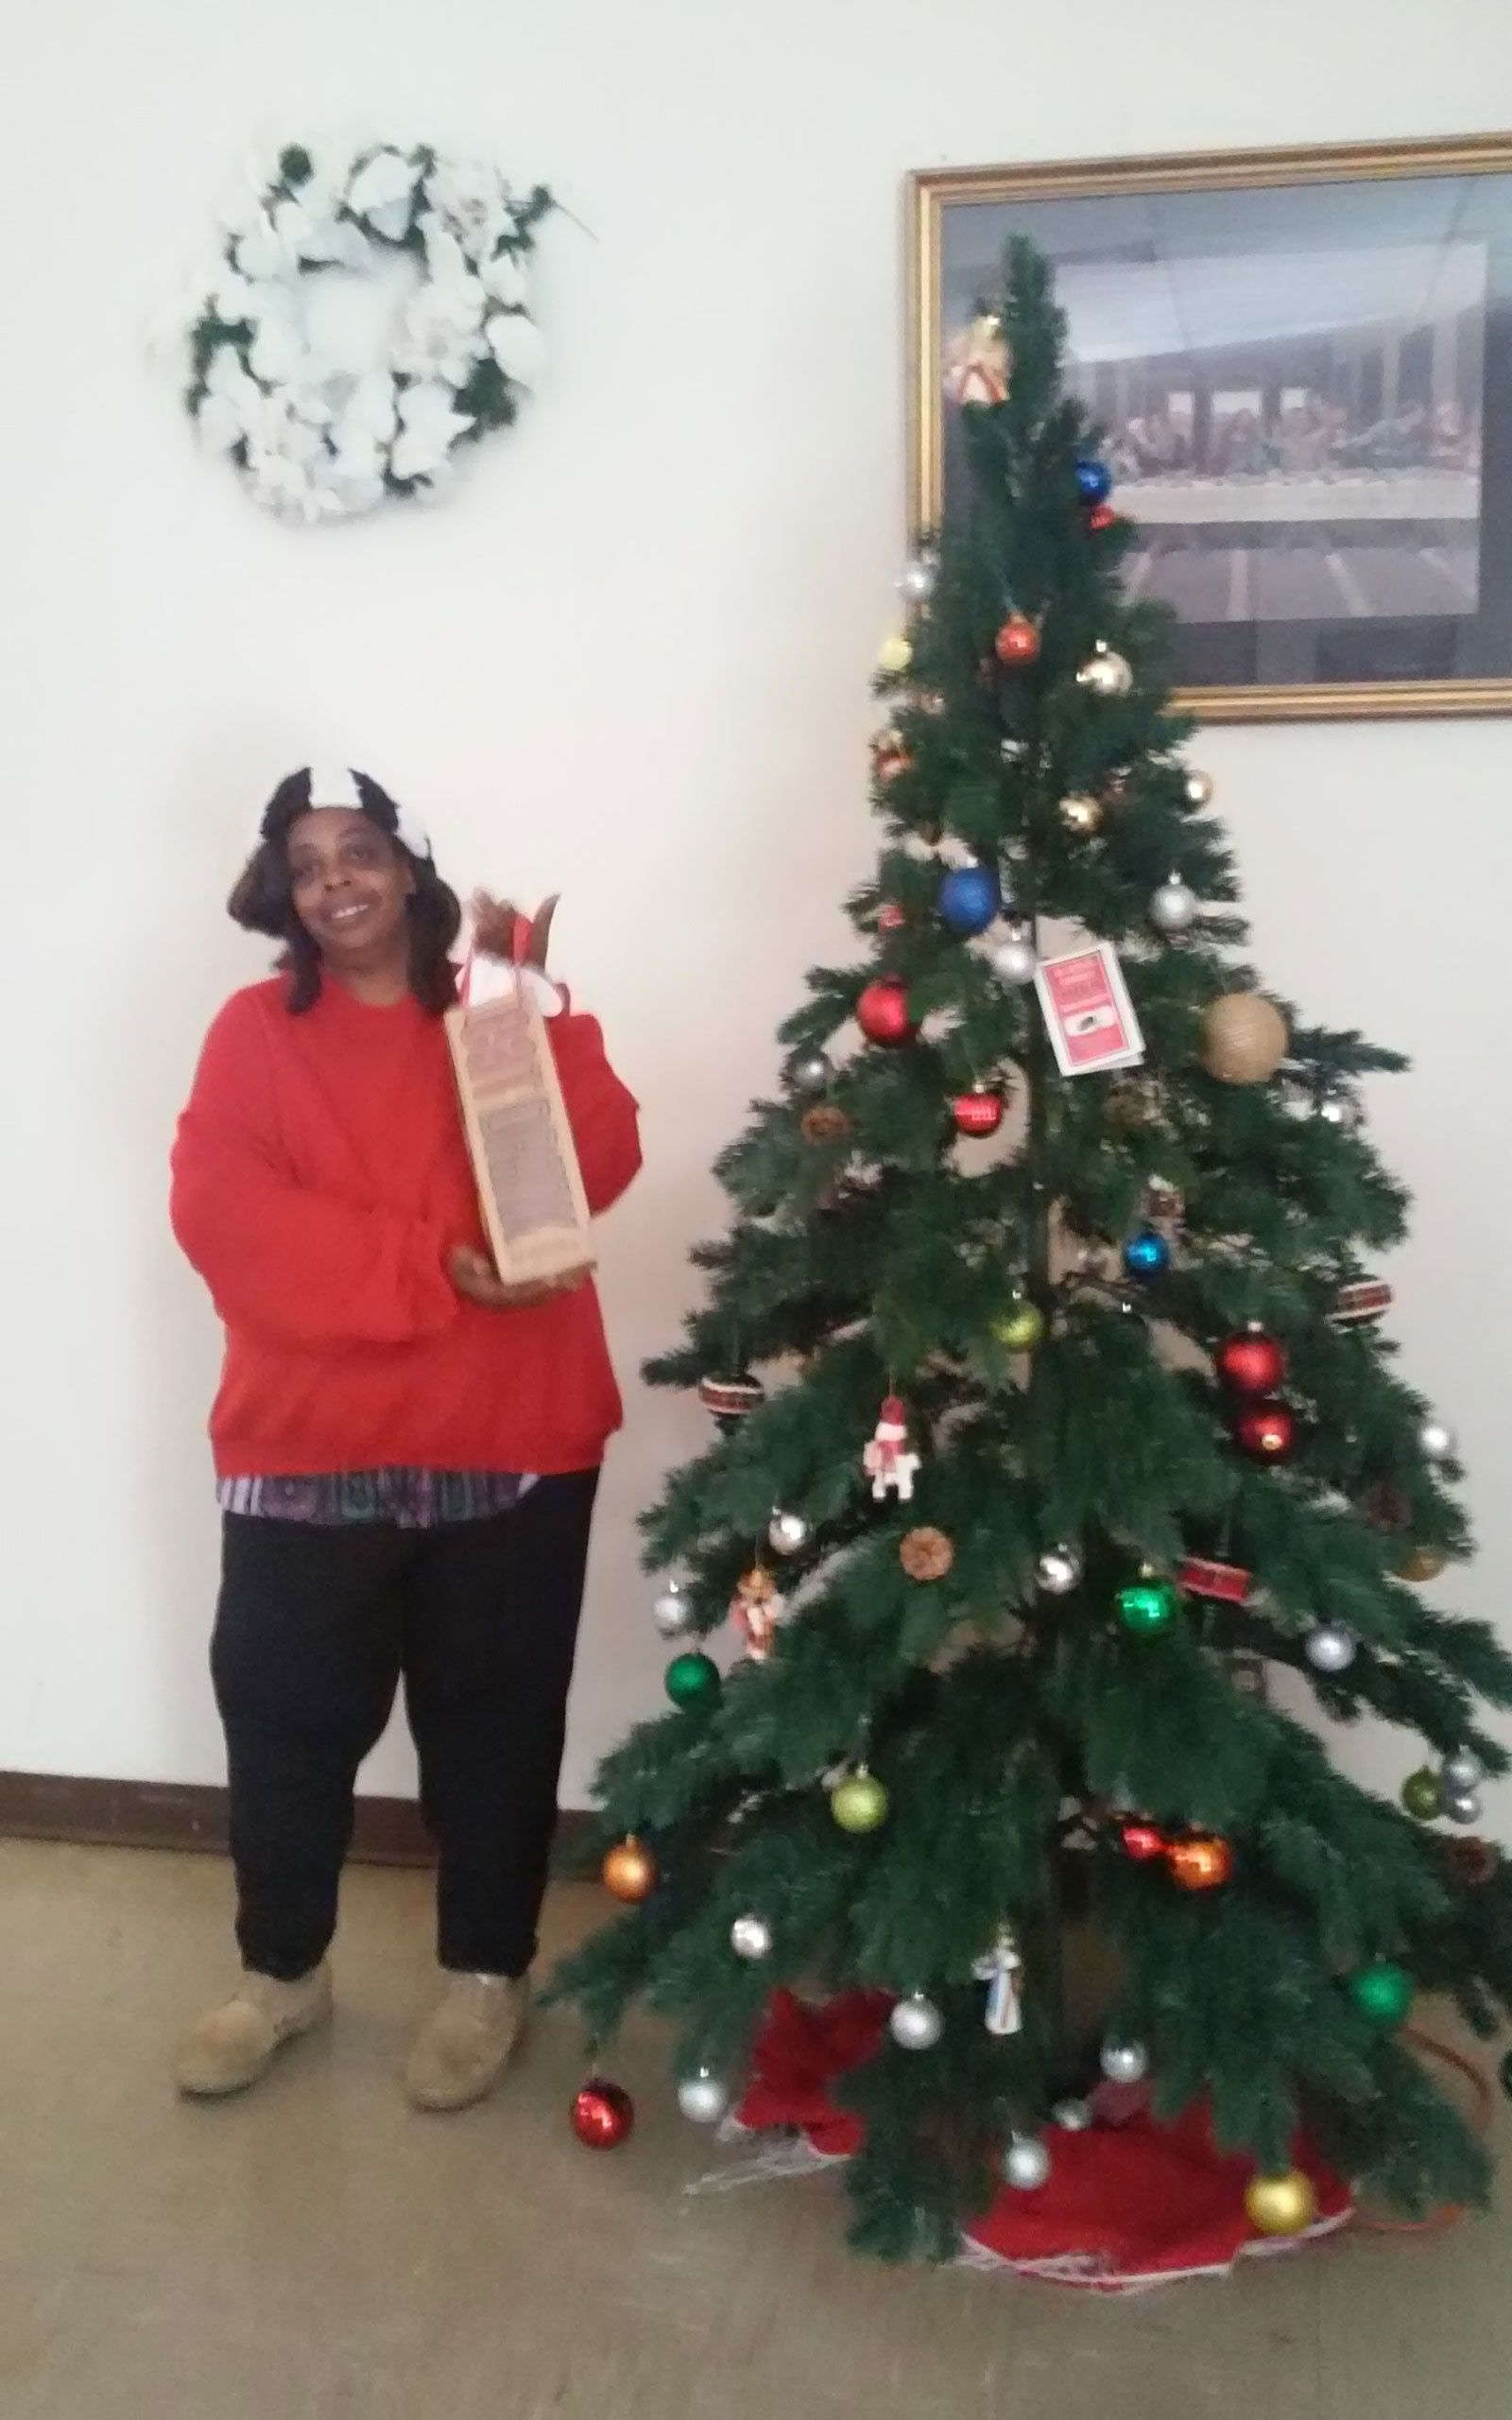 Church Christmas Tree and Gift